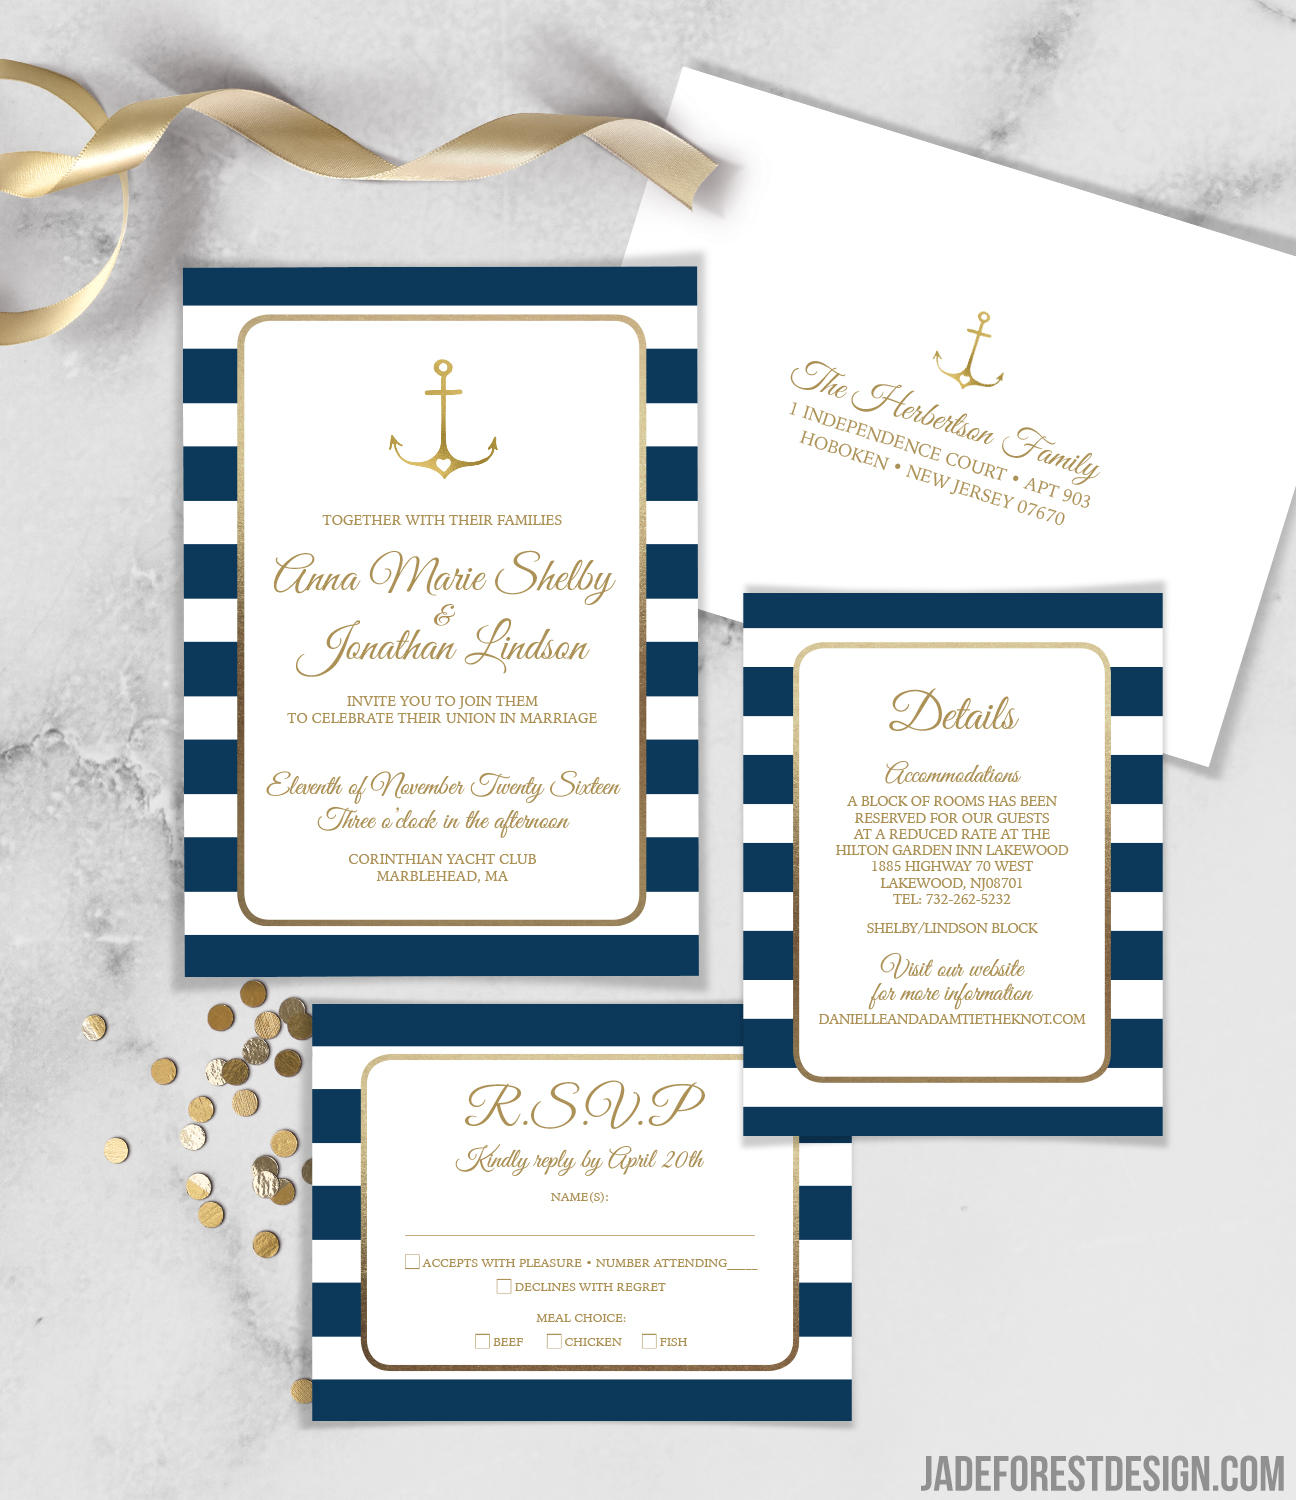 Nautical Wedding Invitations.Nautical Invitation Nautical Wedding Invitations Wedding Invitation Wedding Invites Rsvp Wedding Cards Rsvp Card Personalized Wedding